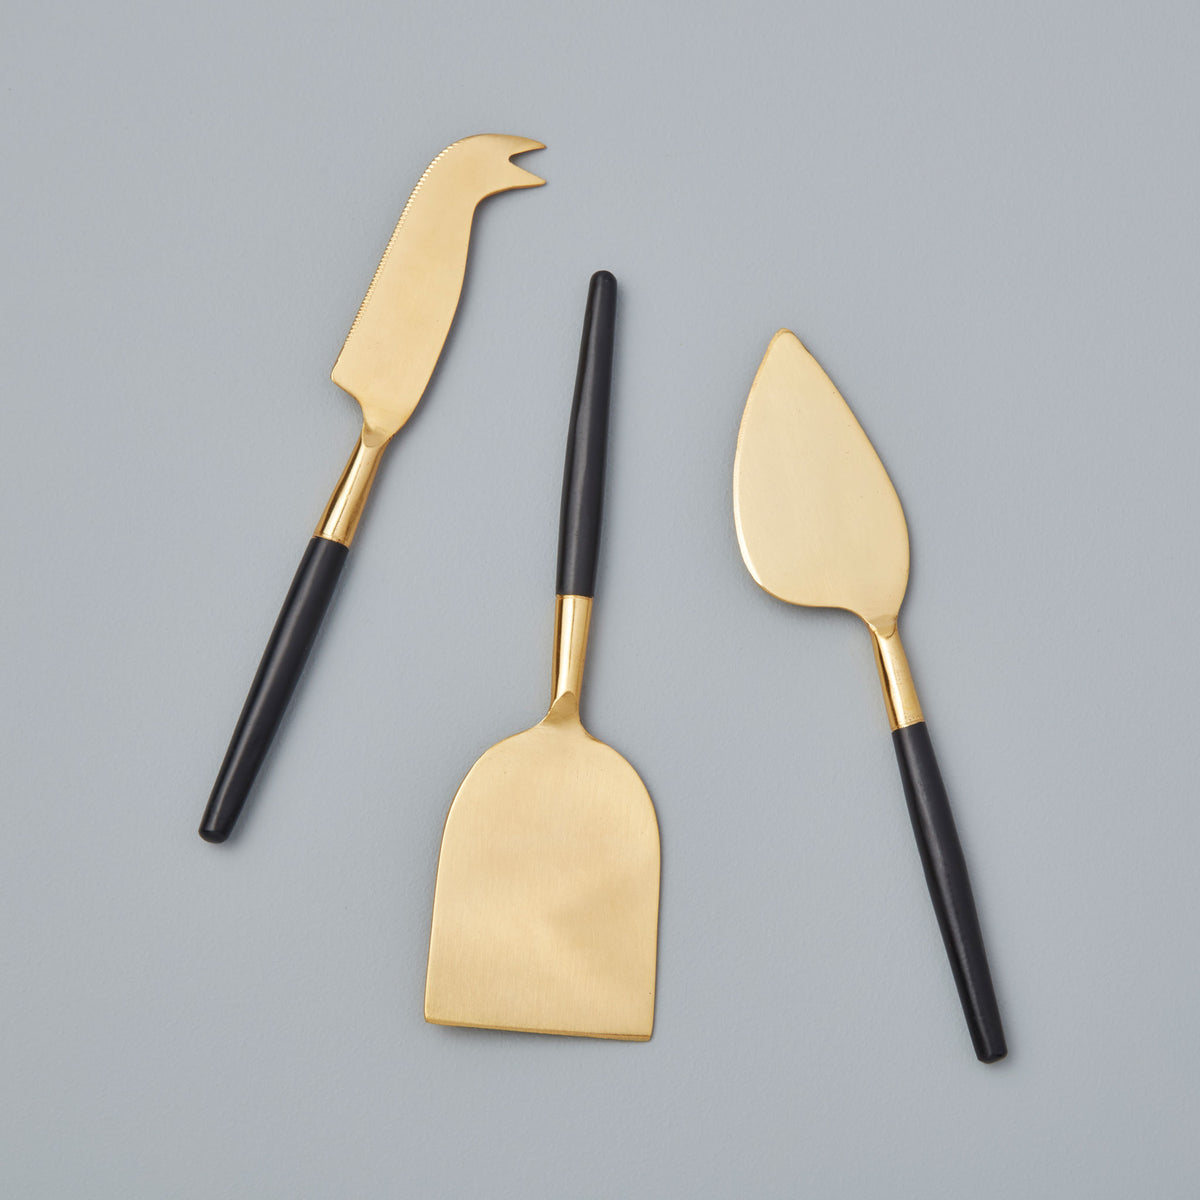 Black & Gold Cheese Knife Set of 3